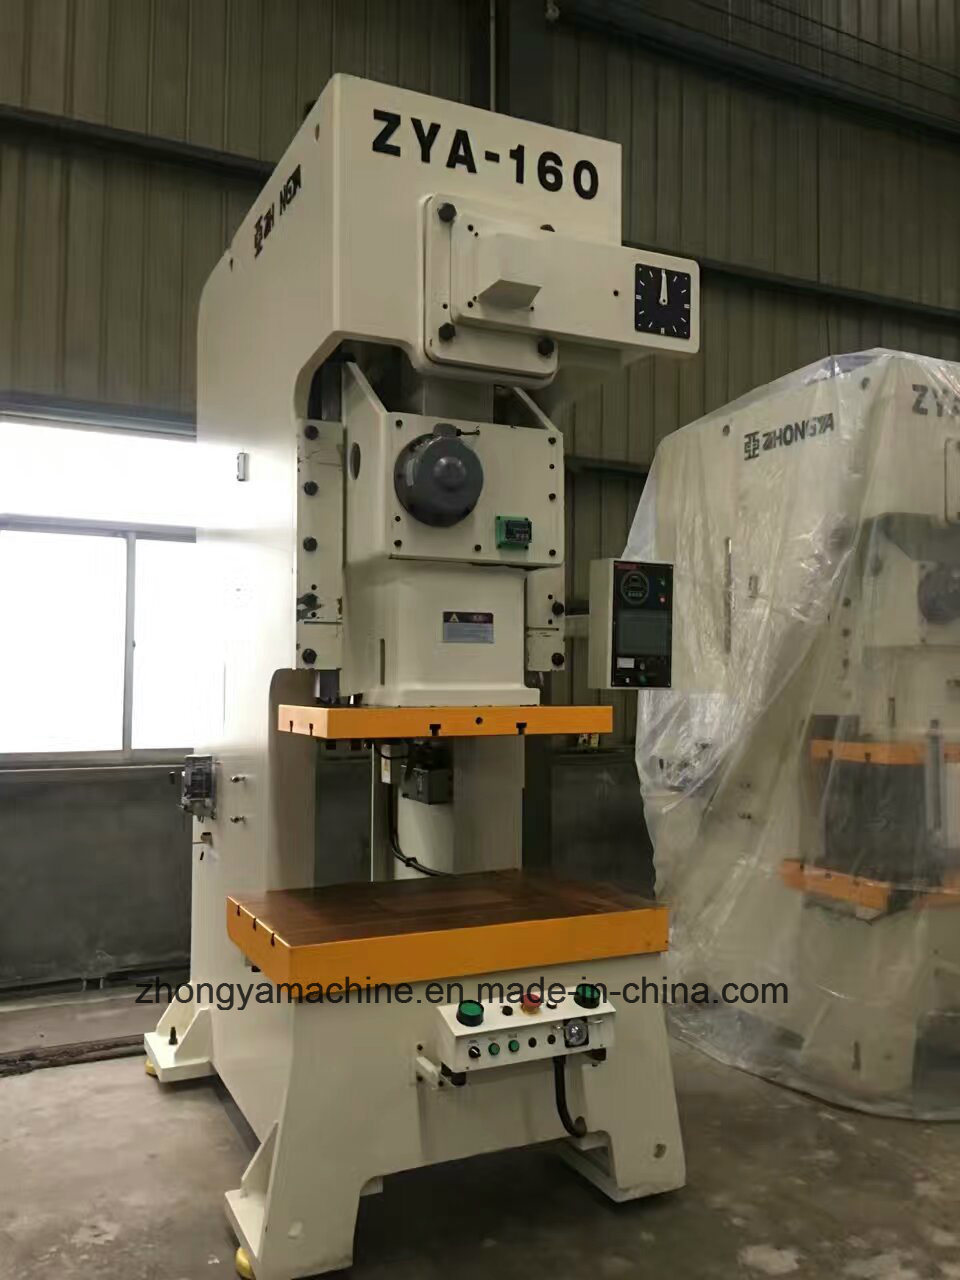 Open Type High Precision Power Press Machine Zya-200ton